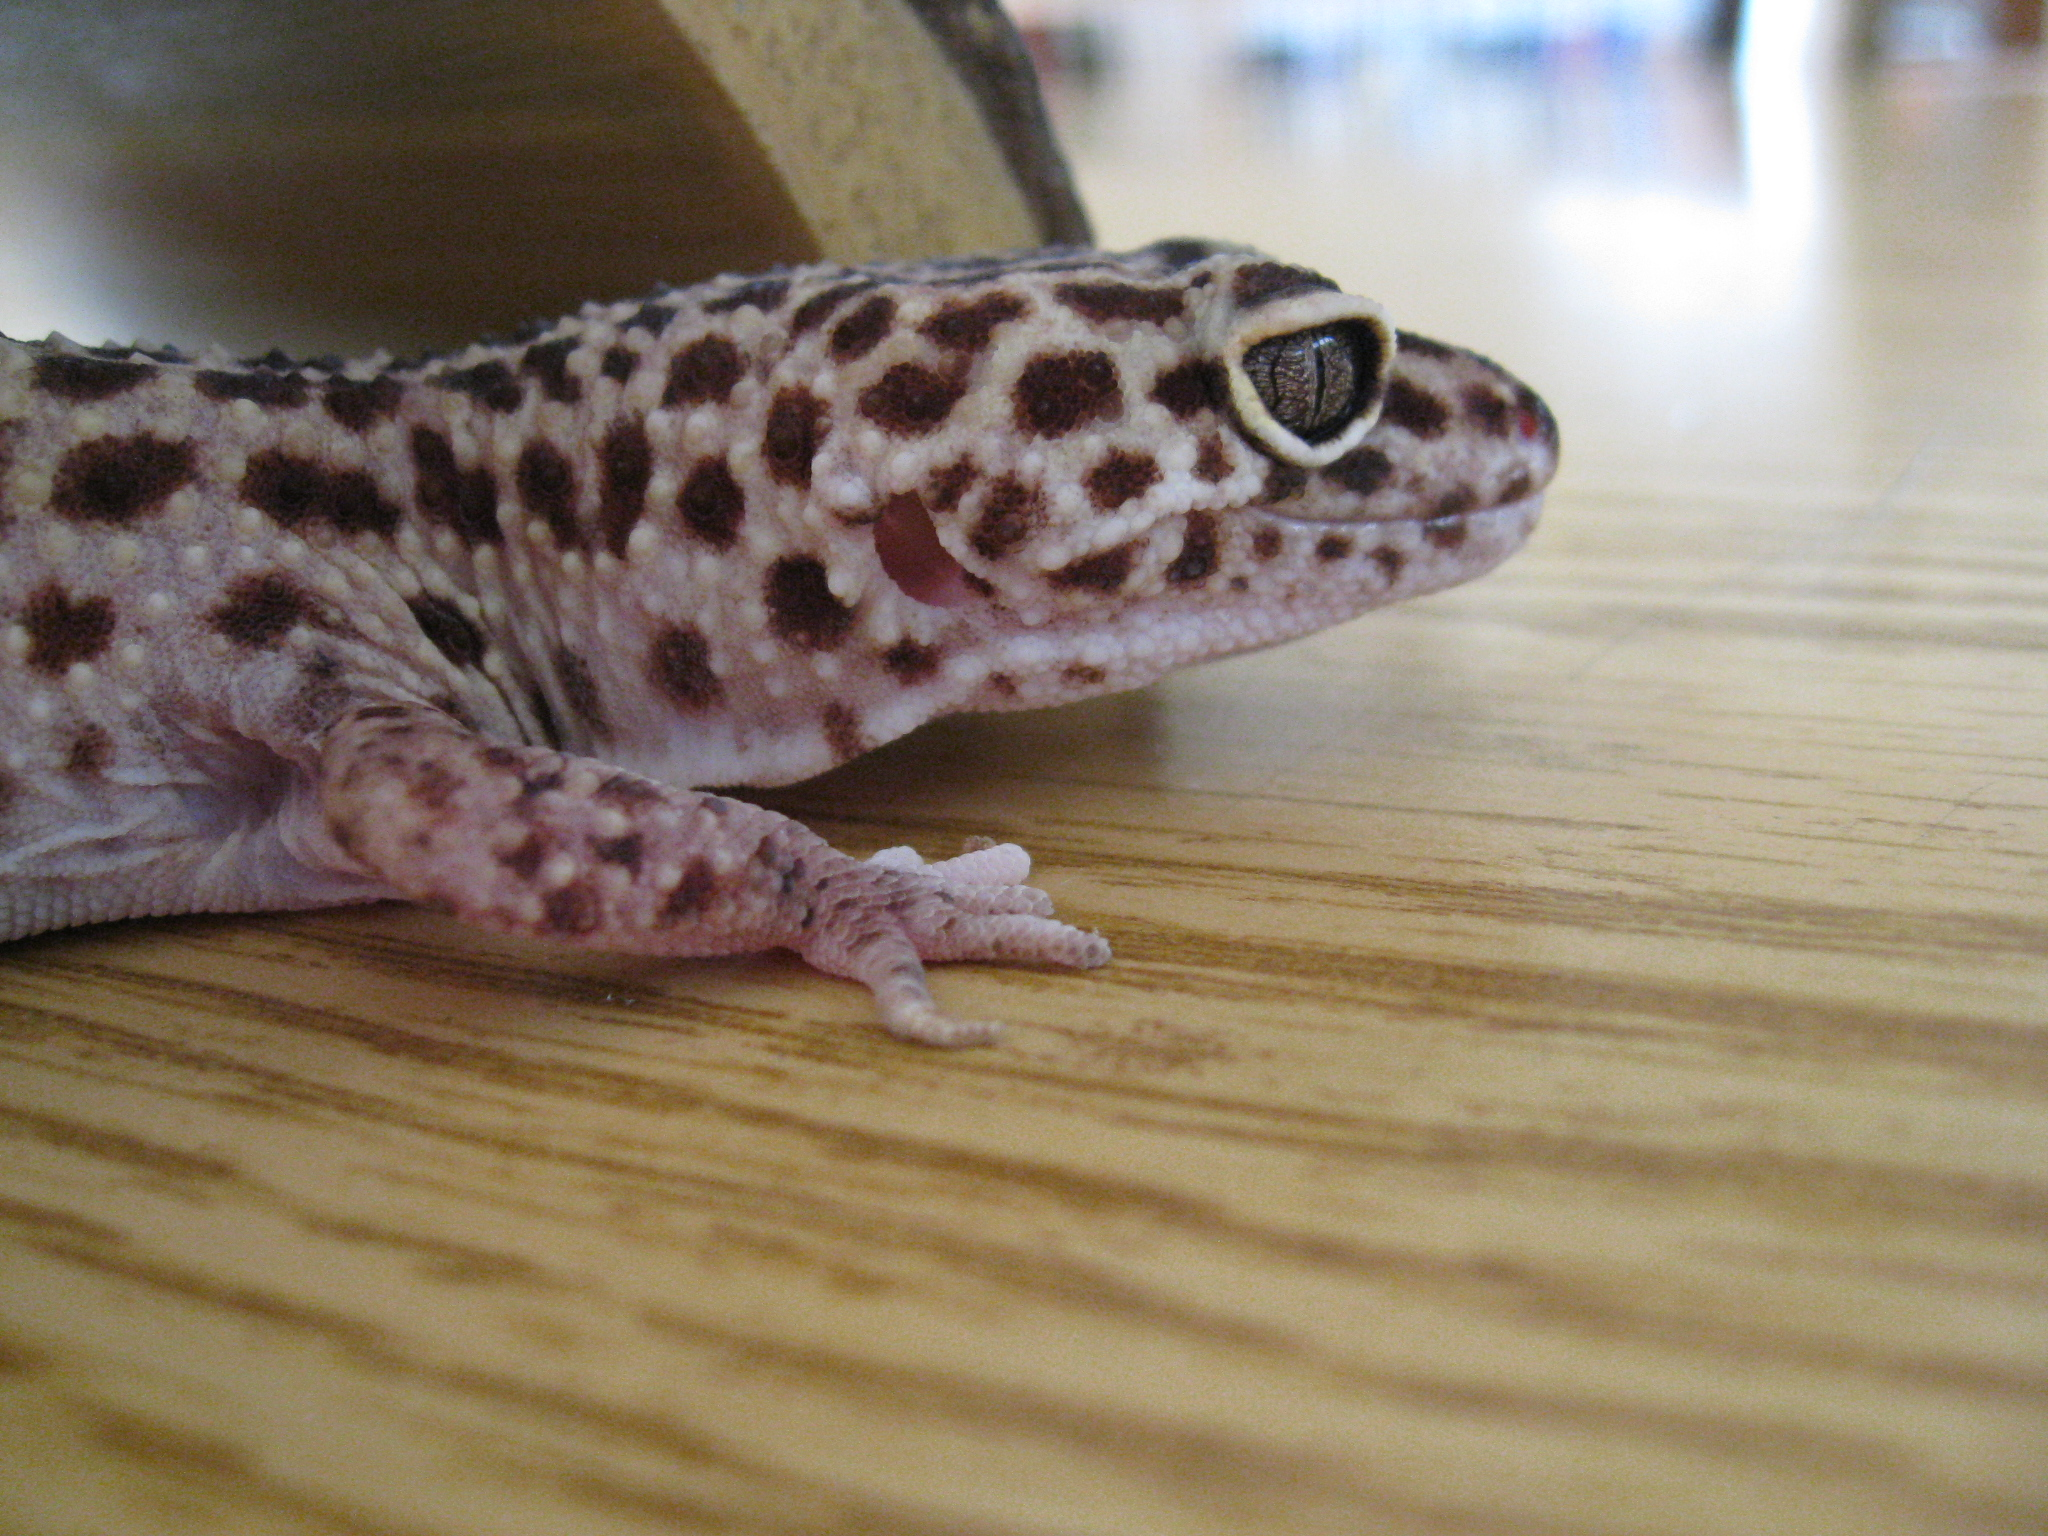 Lizard on table